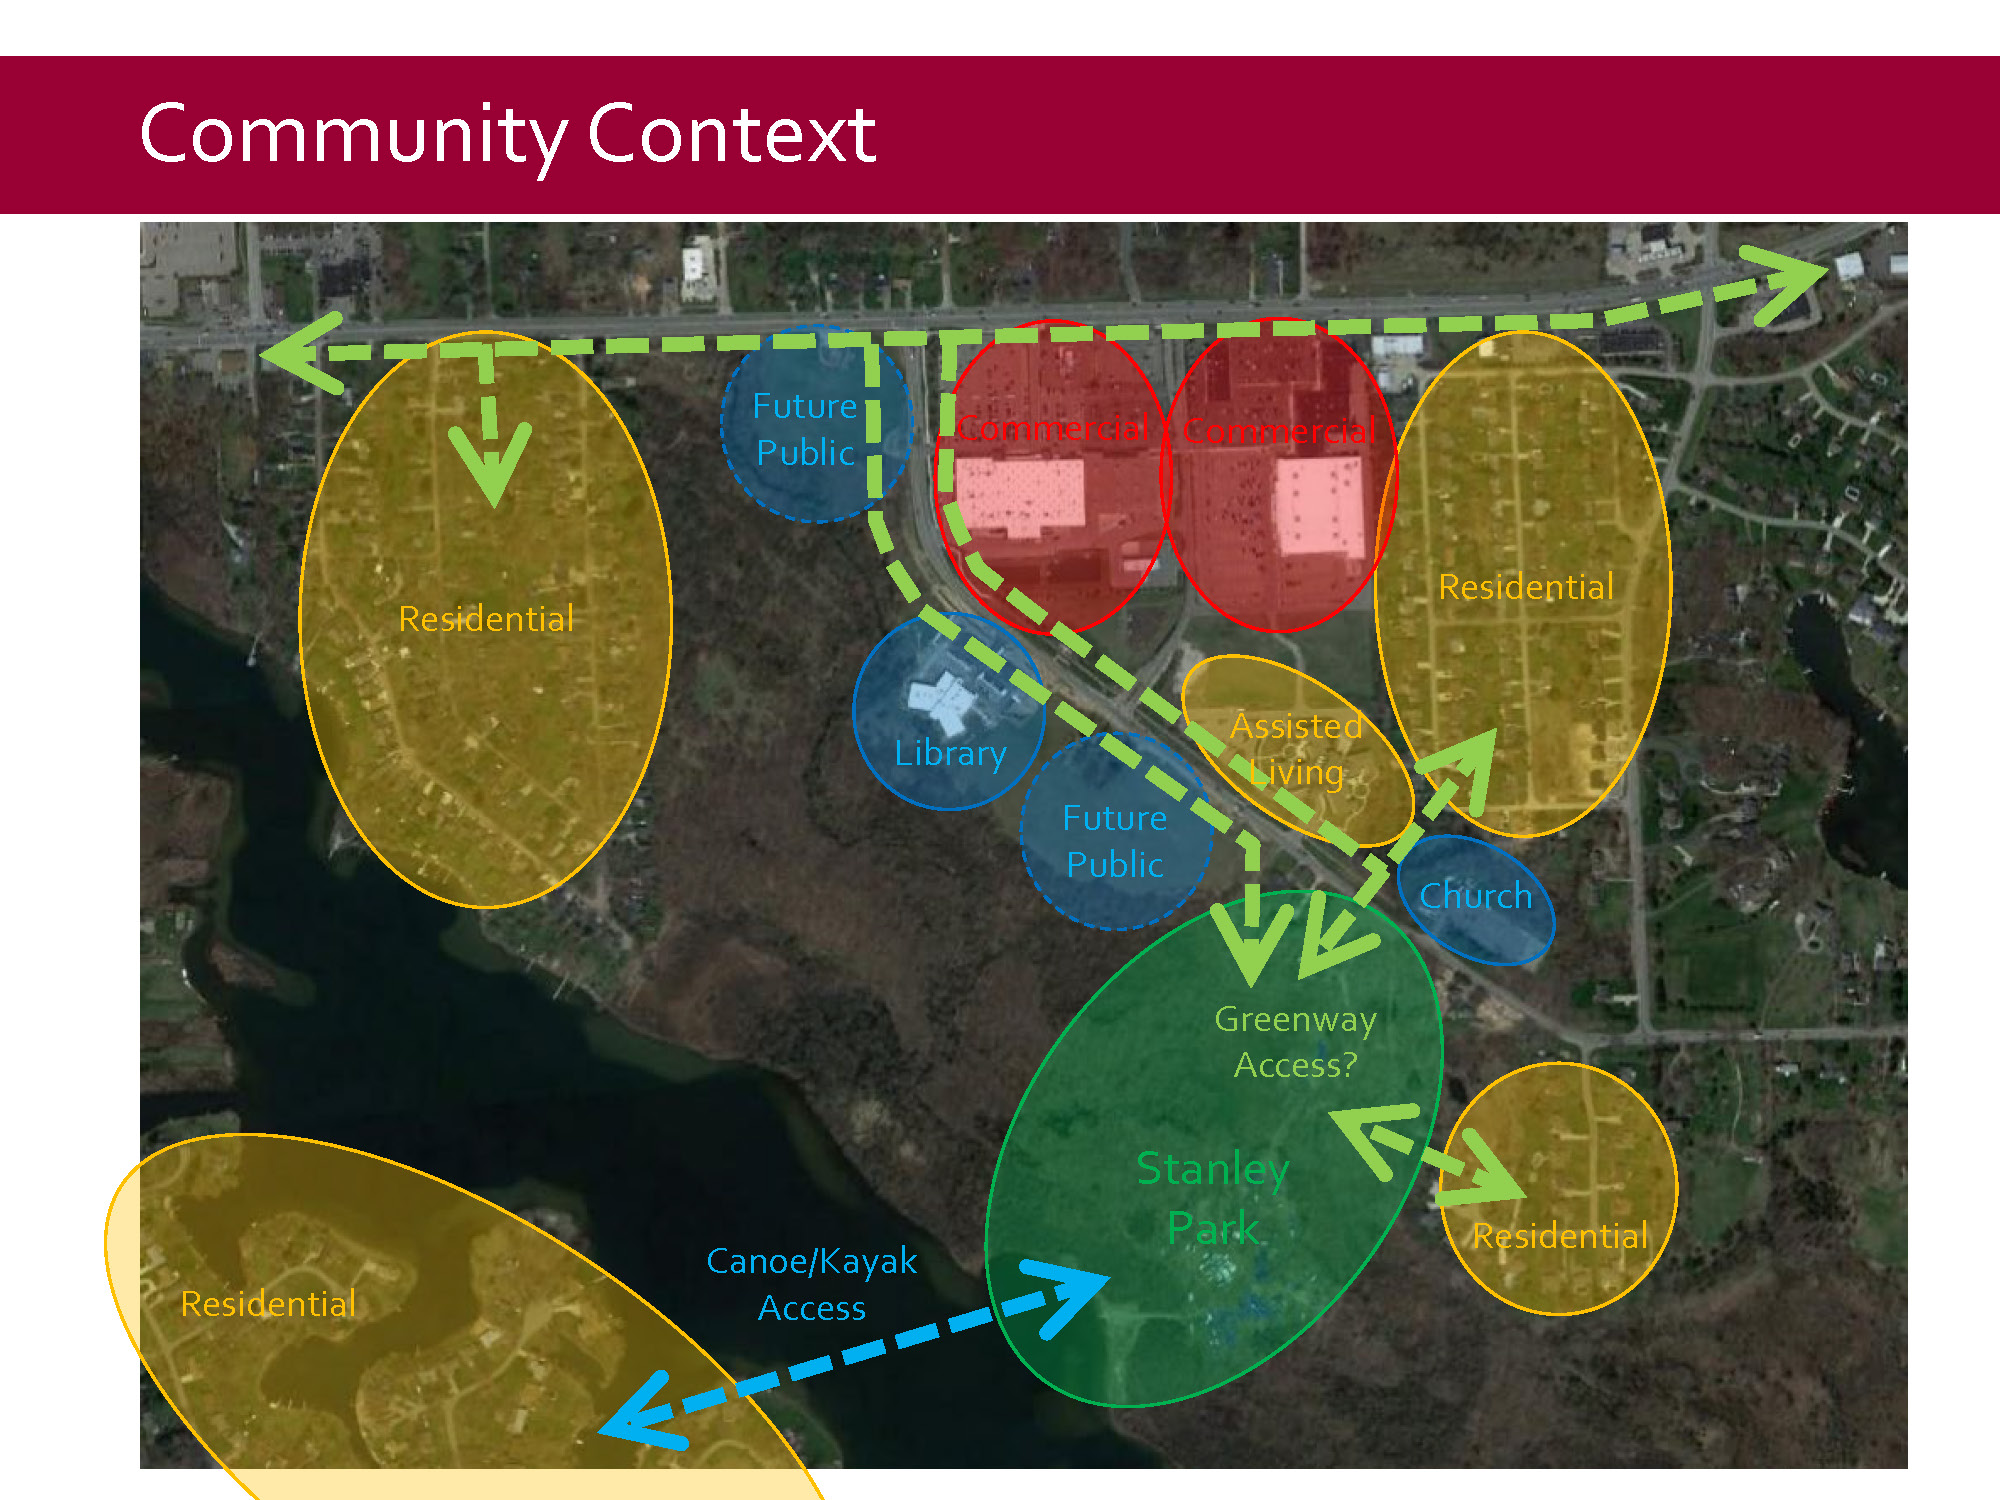 Stanley Park Community Context<br><br>Stanley Park has the potential to be connected to adjacent township property, the library, and nearby neighborhoods via future pathways.